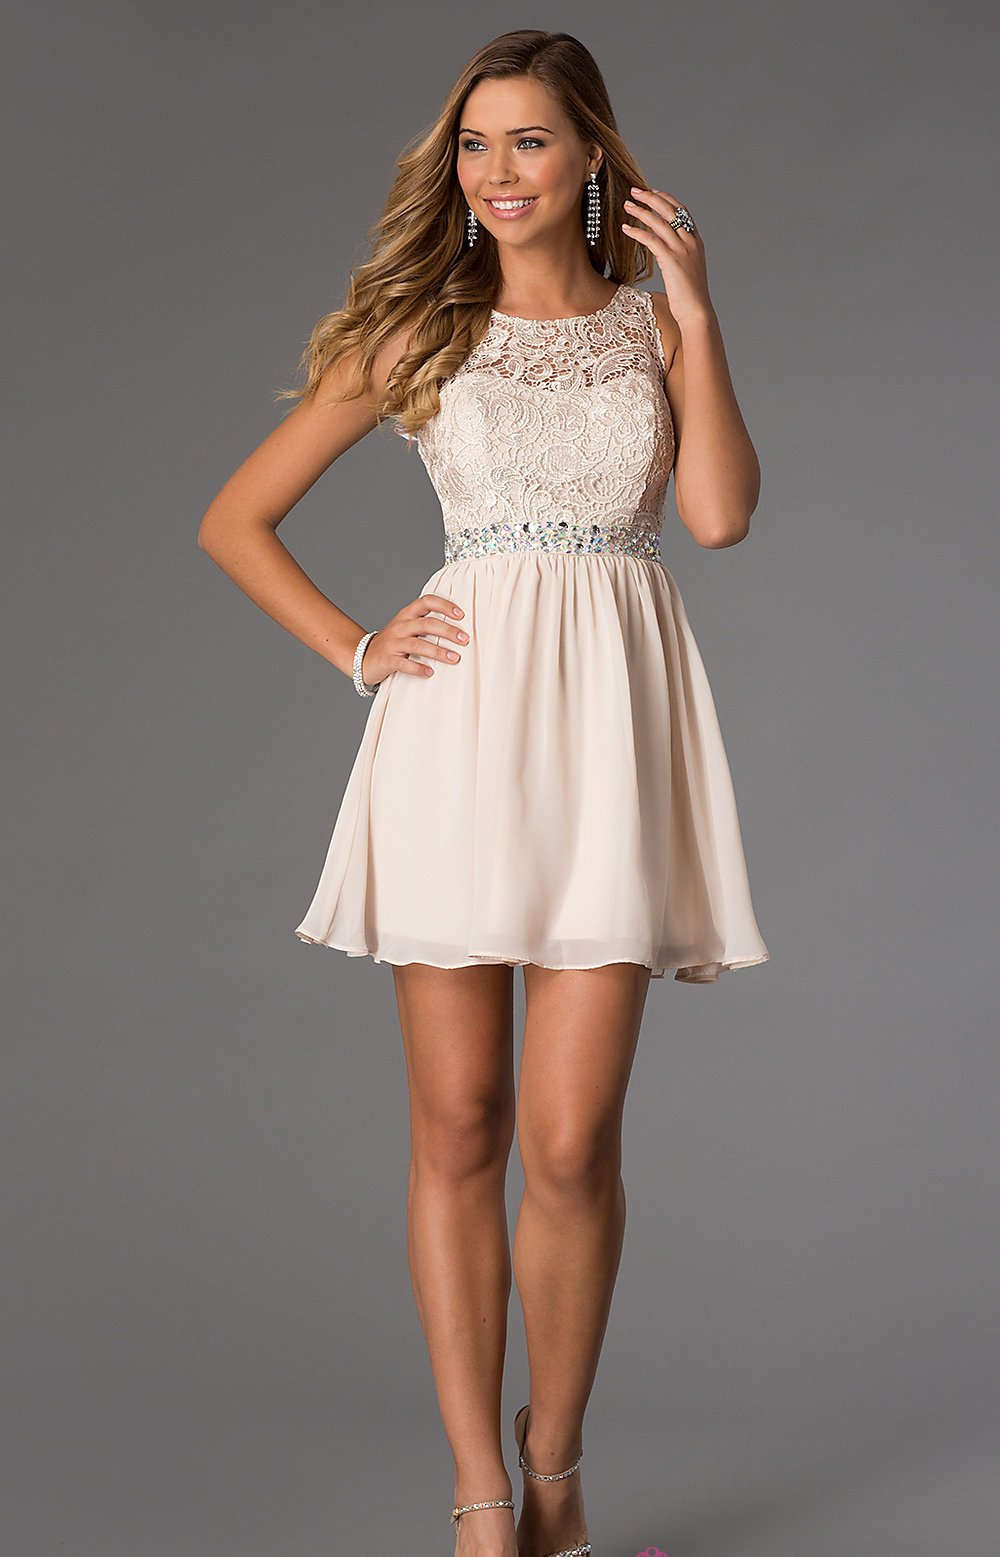 Short Sleeveless Dress With Lace Bodice Beautifulfeed